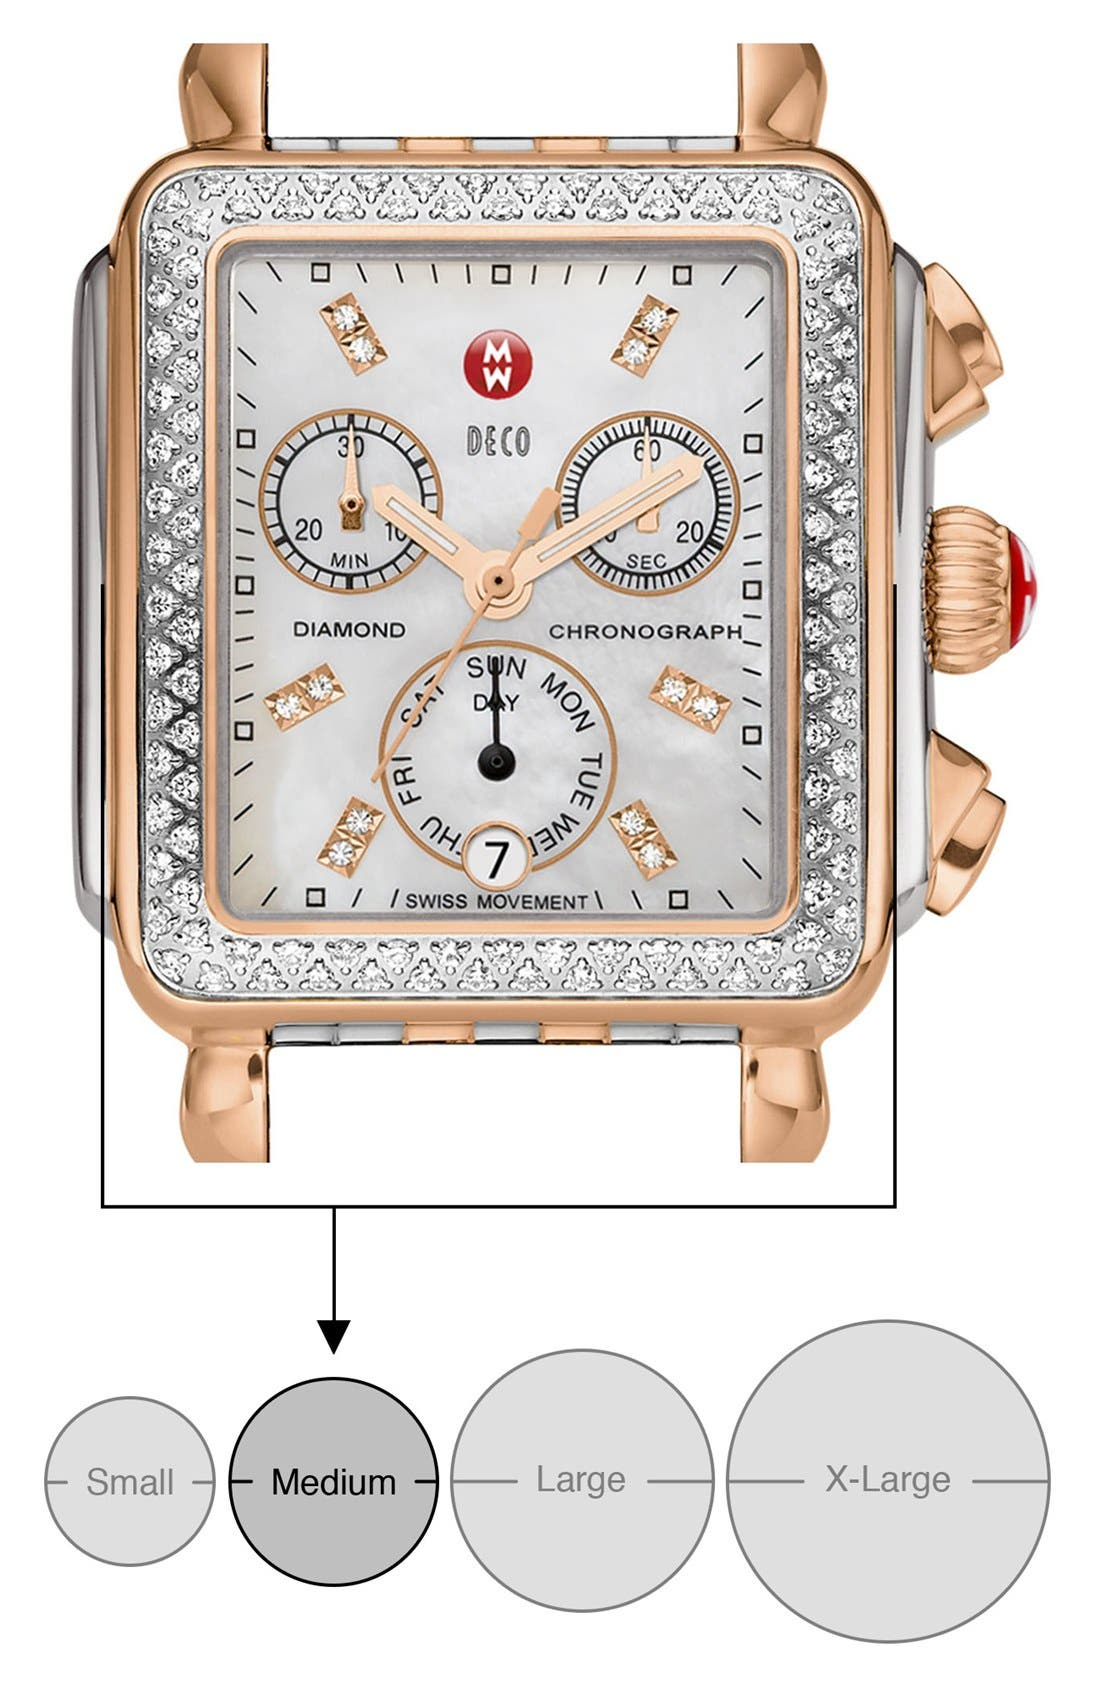 Deco Diamond Diamond Dial Watch Case, 33mm x 35mm,                             Alternate thumbnail 8, color,                             SILVER/ ROSE GOLD